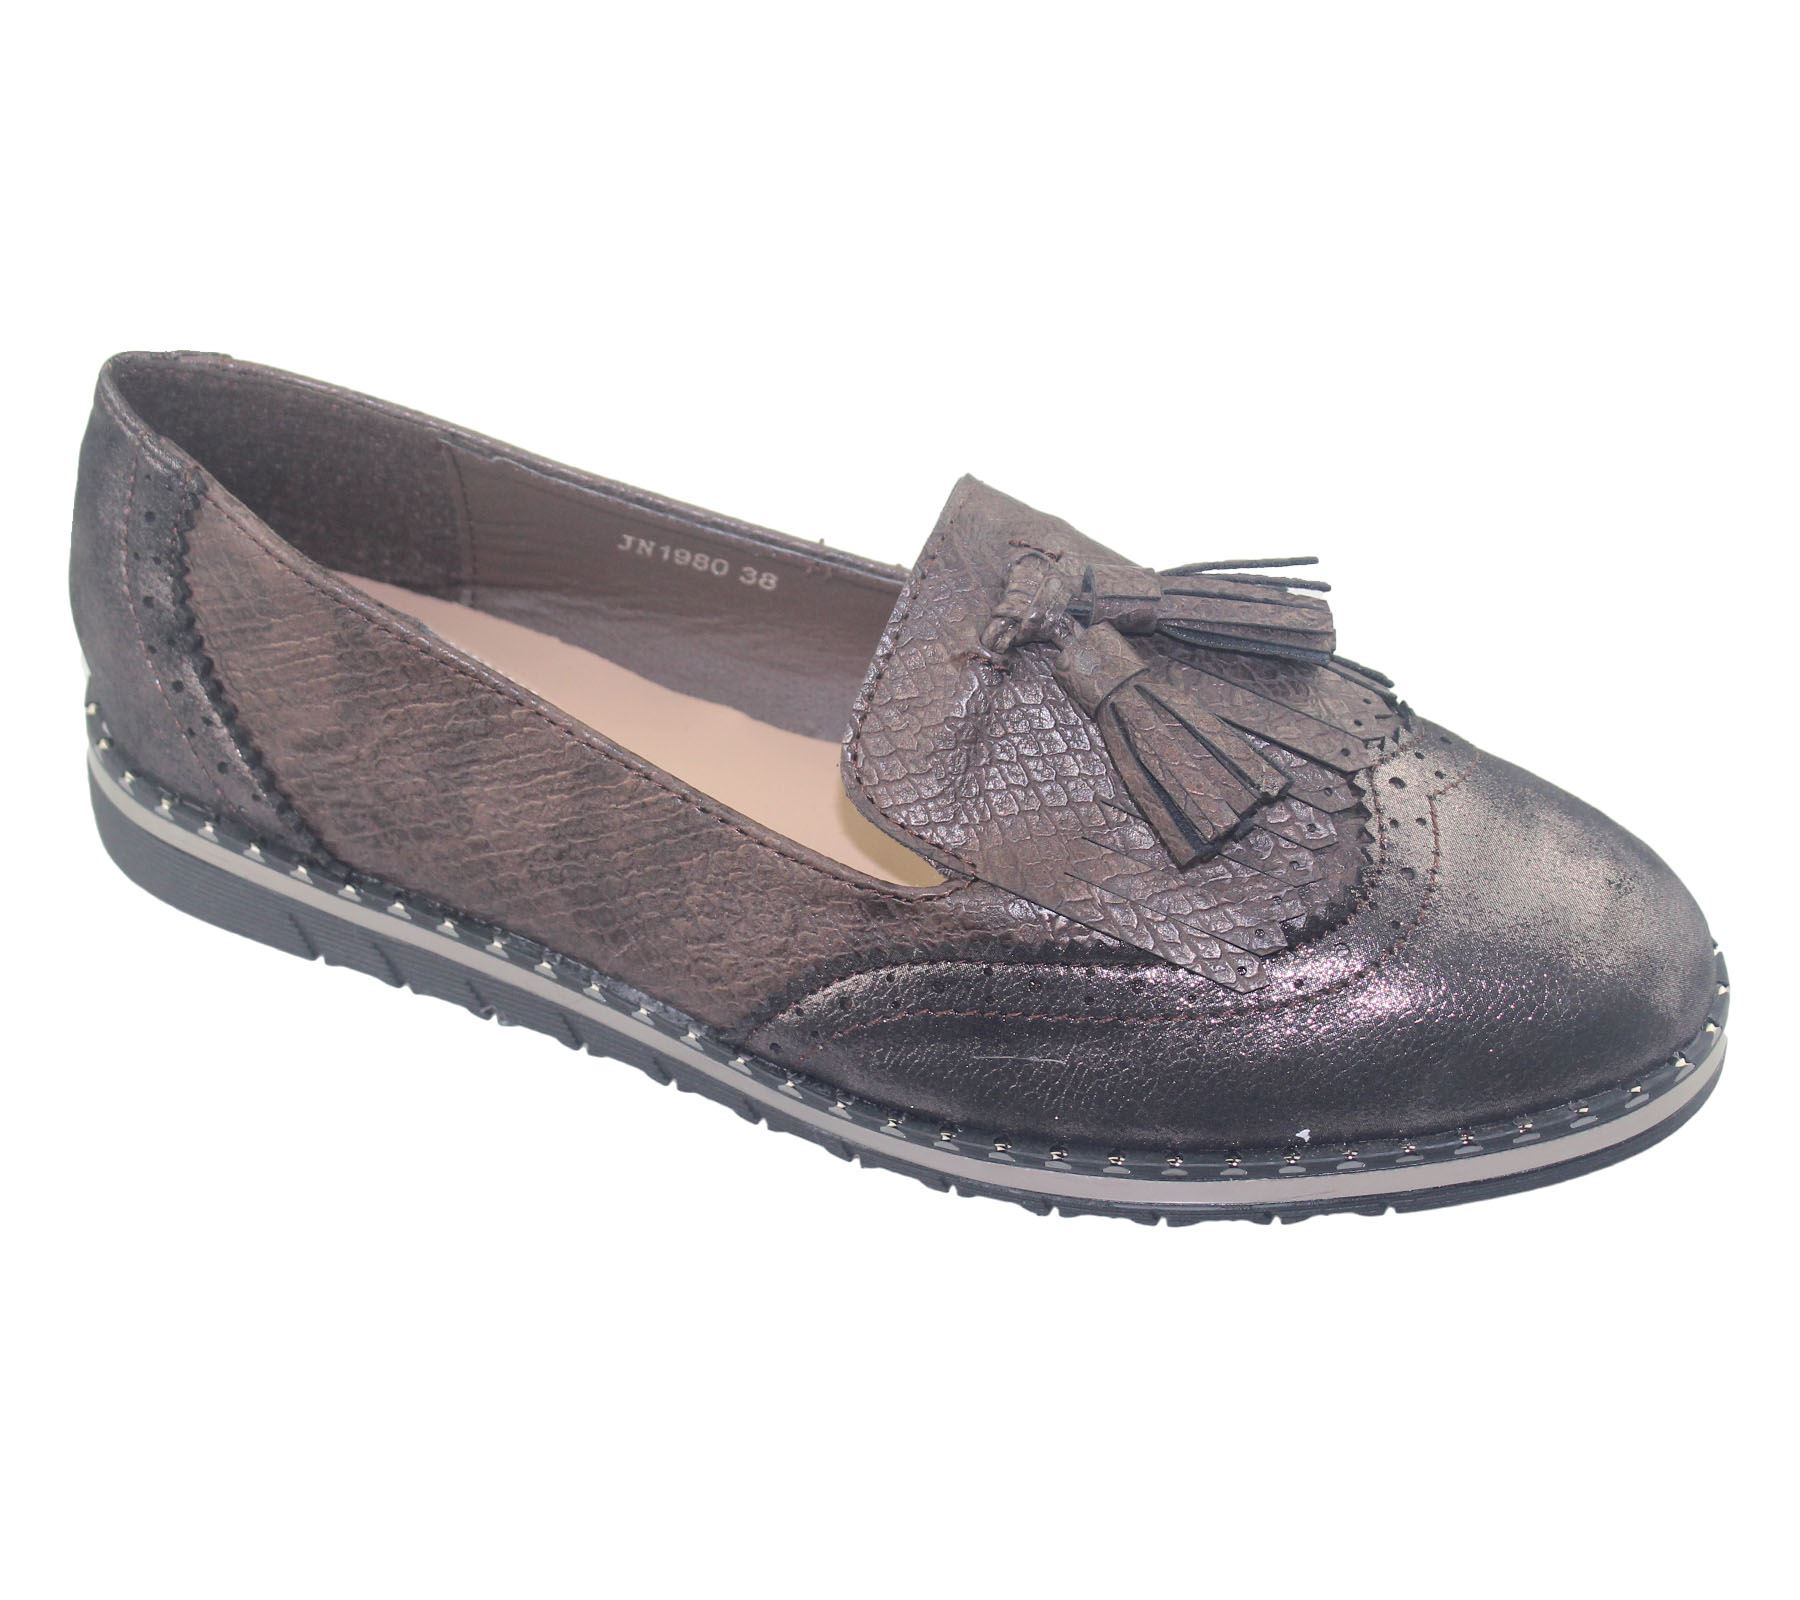 Women-Brogue-Shoes-Ladies-Tassel-Oxford-Office-Snack-Pattent-Loafers-Pumps thumbnail 13